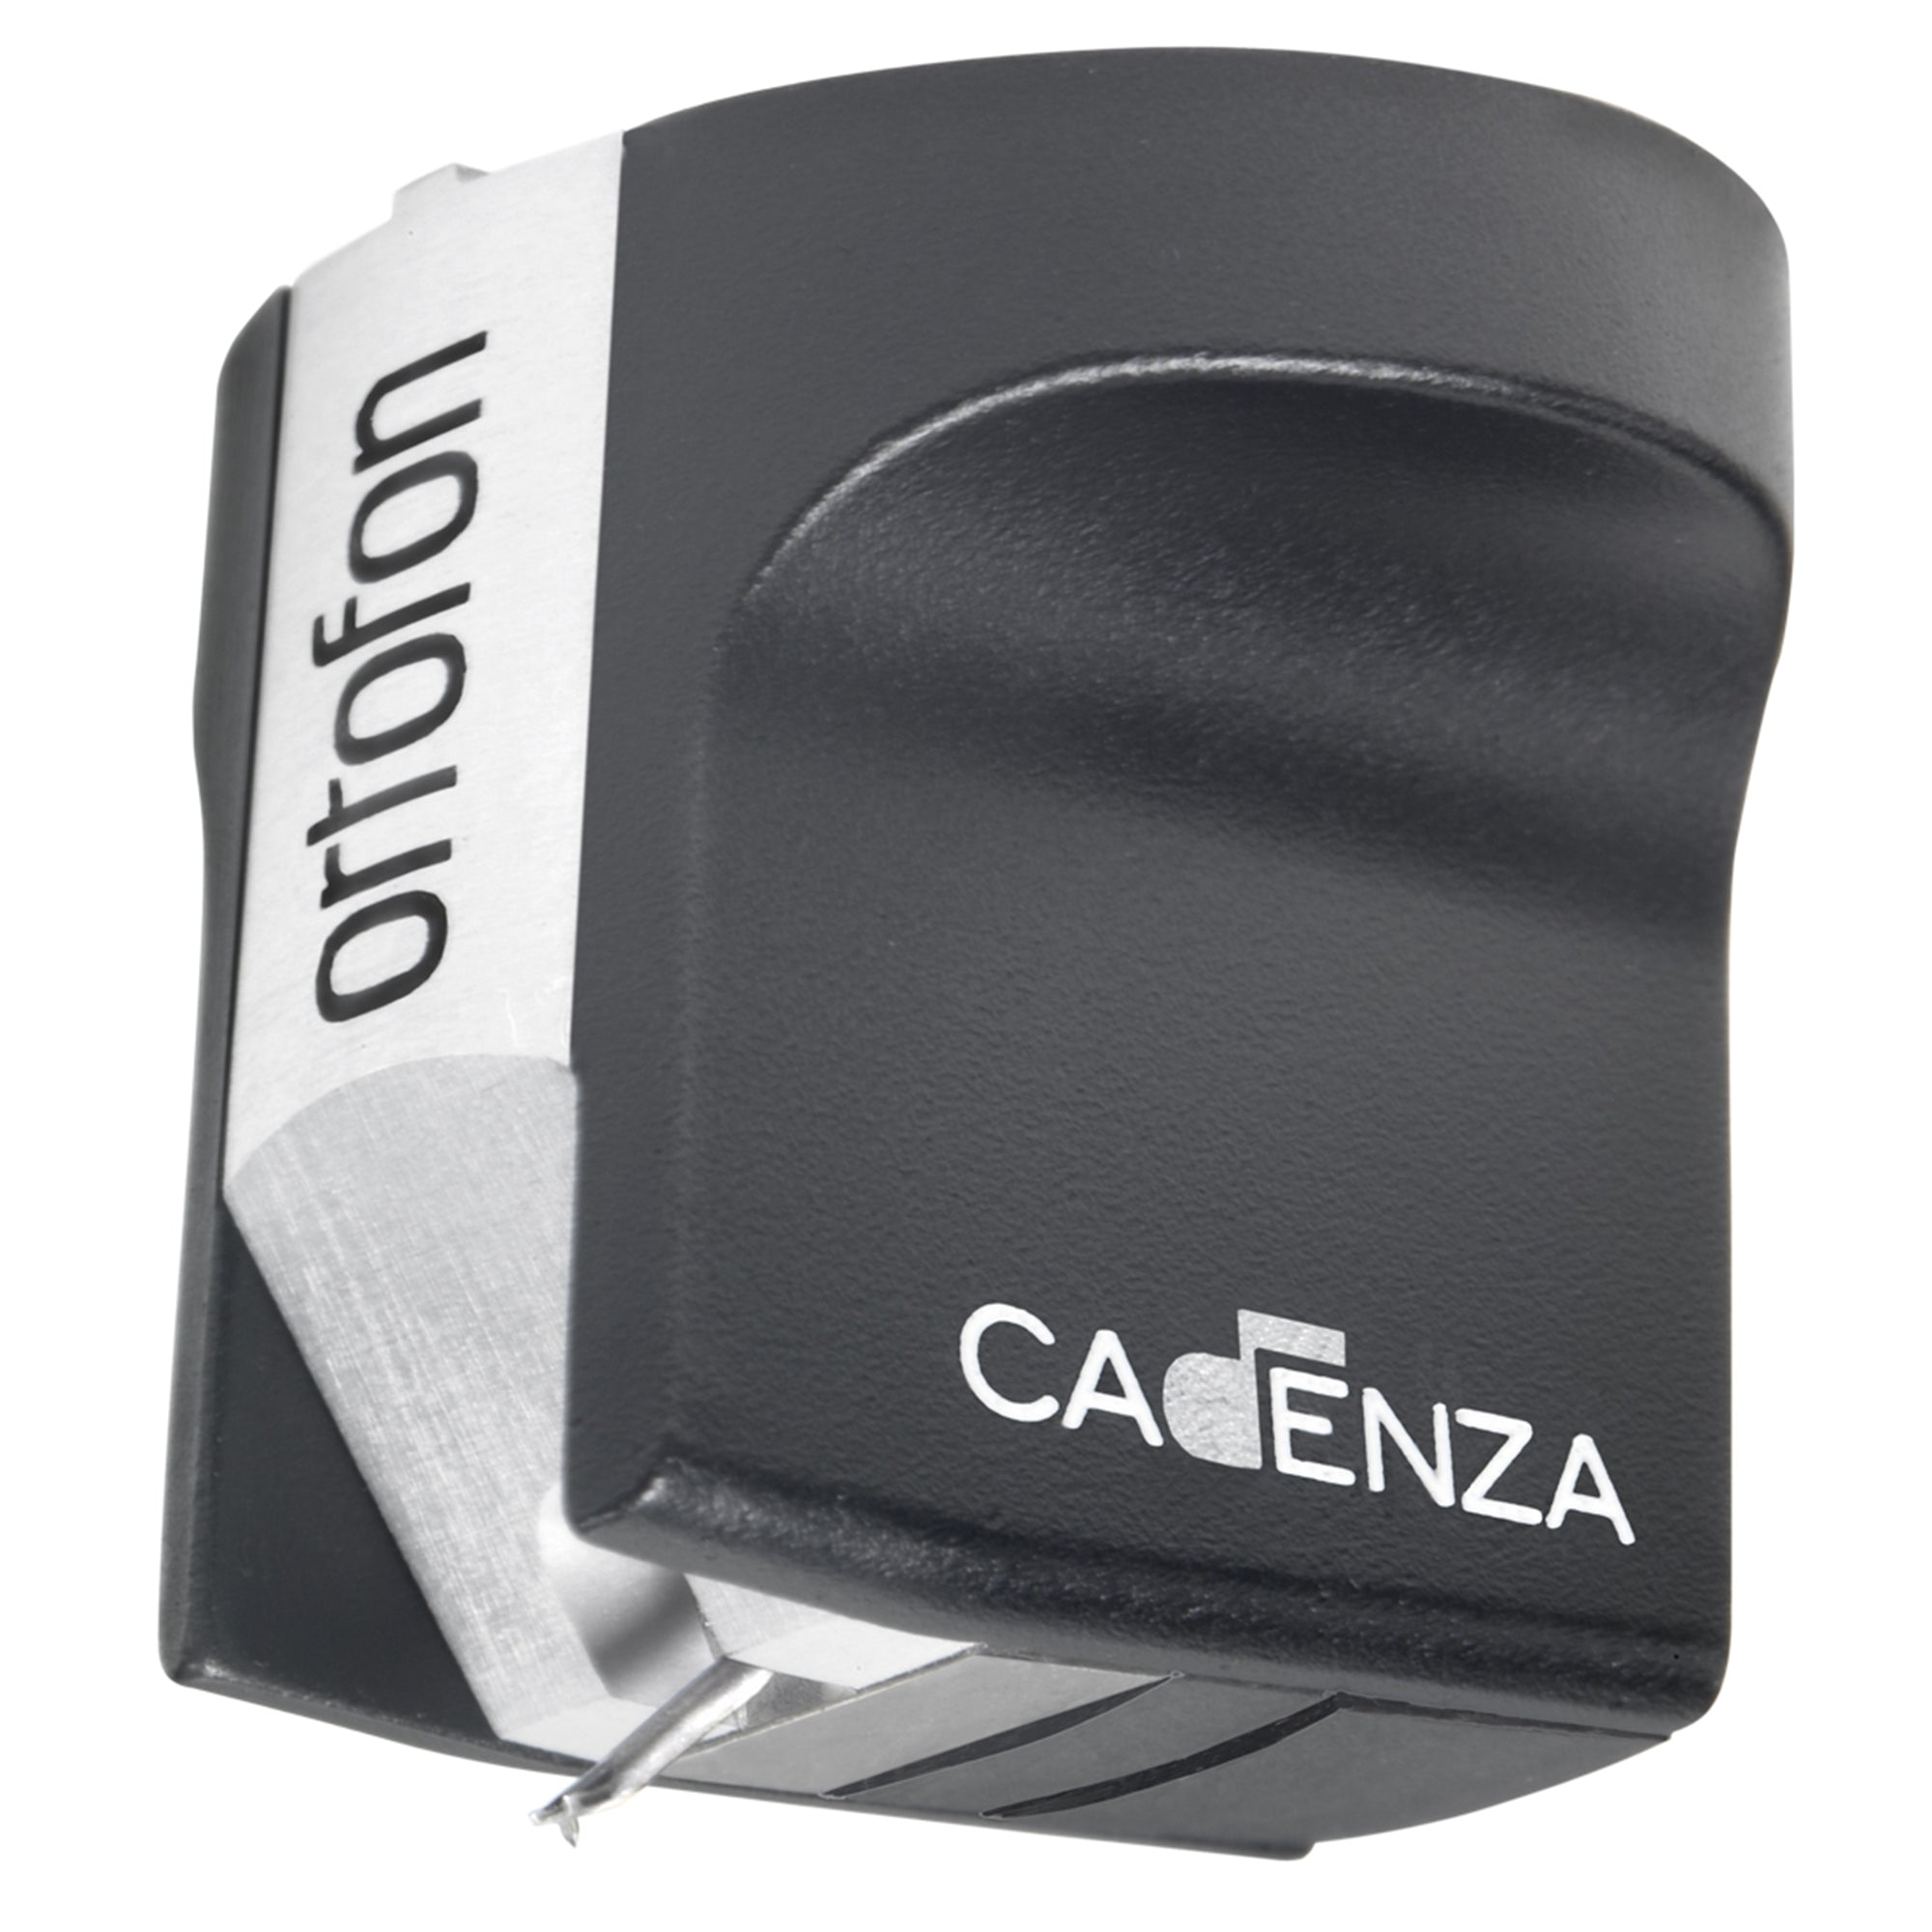 Ortofon Hi-Fi MC Cadenza Mono Moving Coil Cartridge